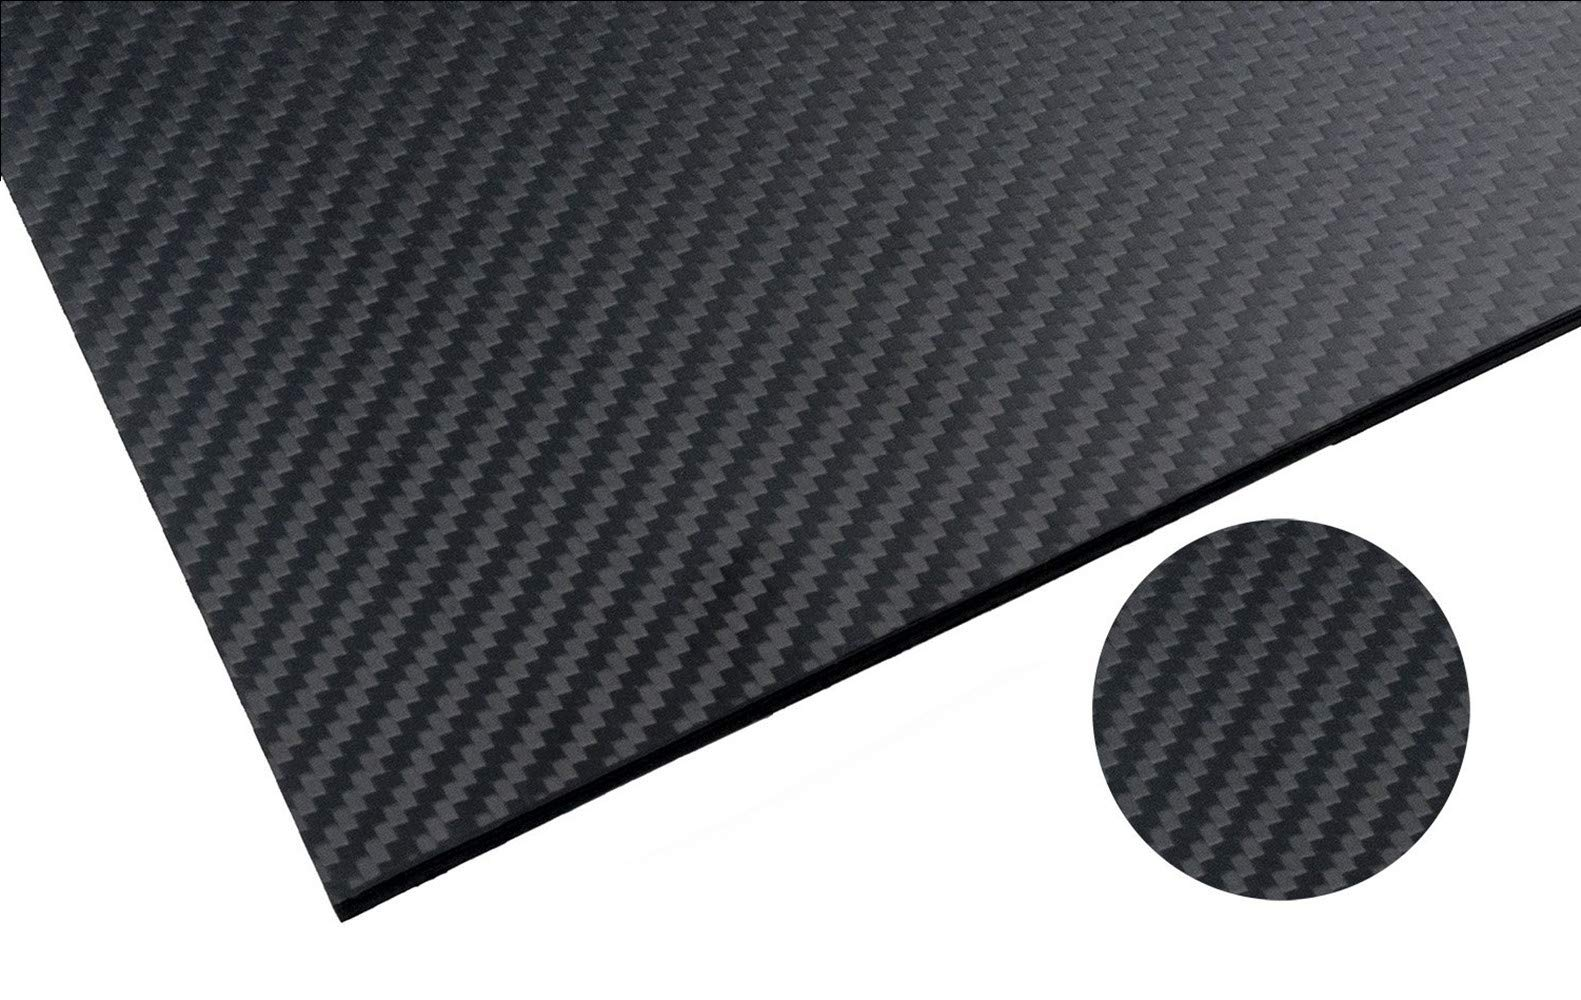 RacingCarbon 500X400X3.0MM 100% 3K Full Carbon Fiber Sheet - 3mm Thick - Twill Weave Matte Surface by RacingCarbon